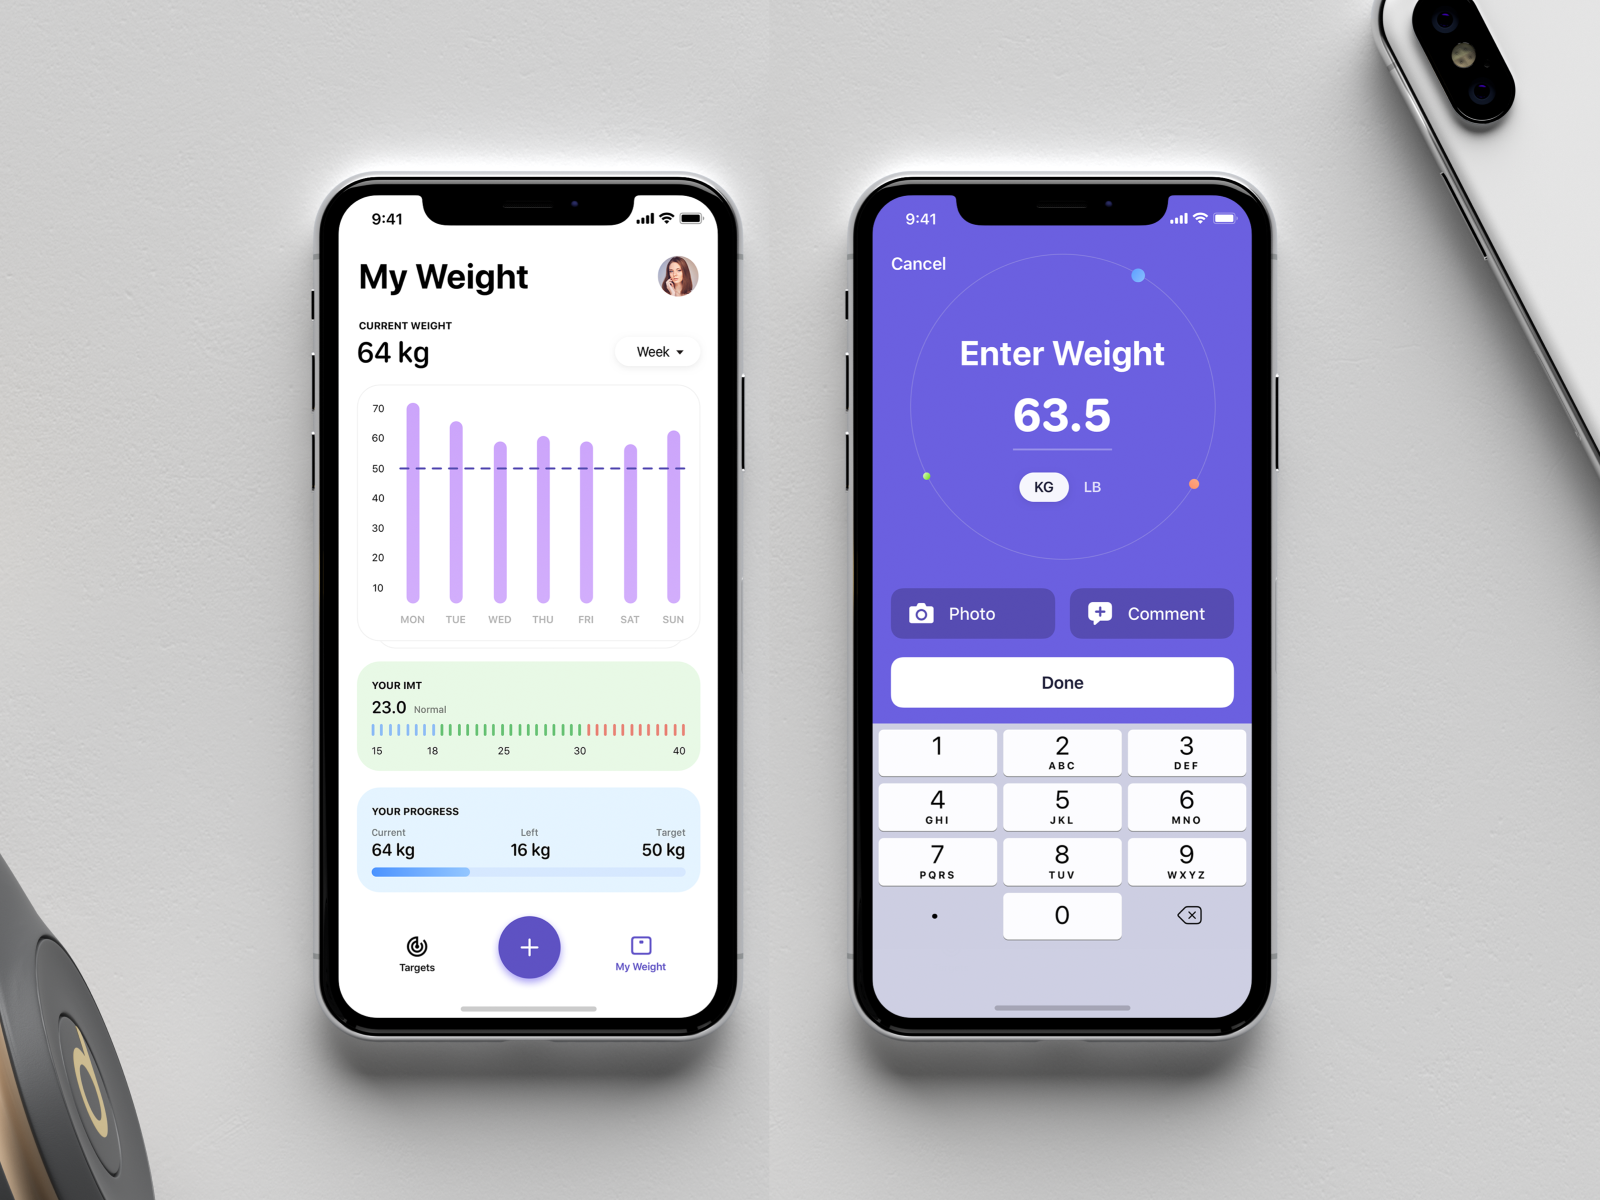 Weight Loss Tracker Mobile App Concept cover image